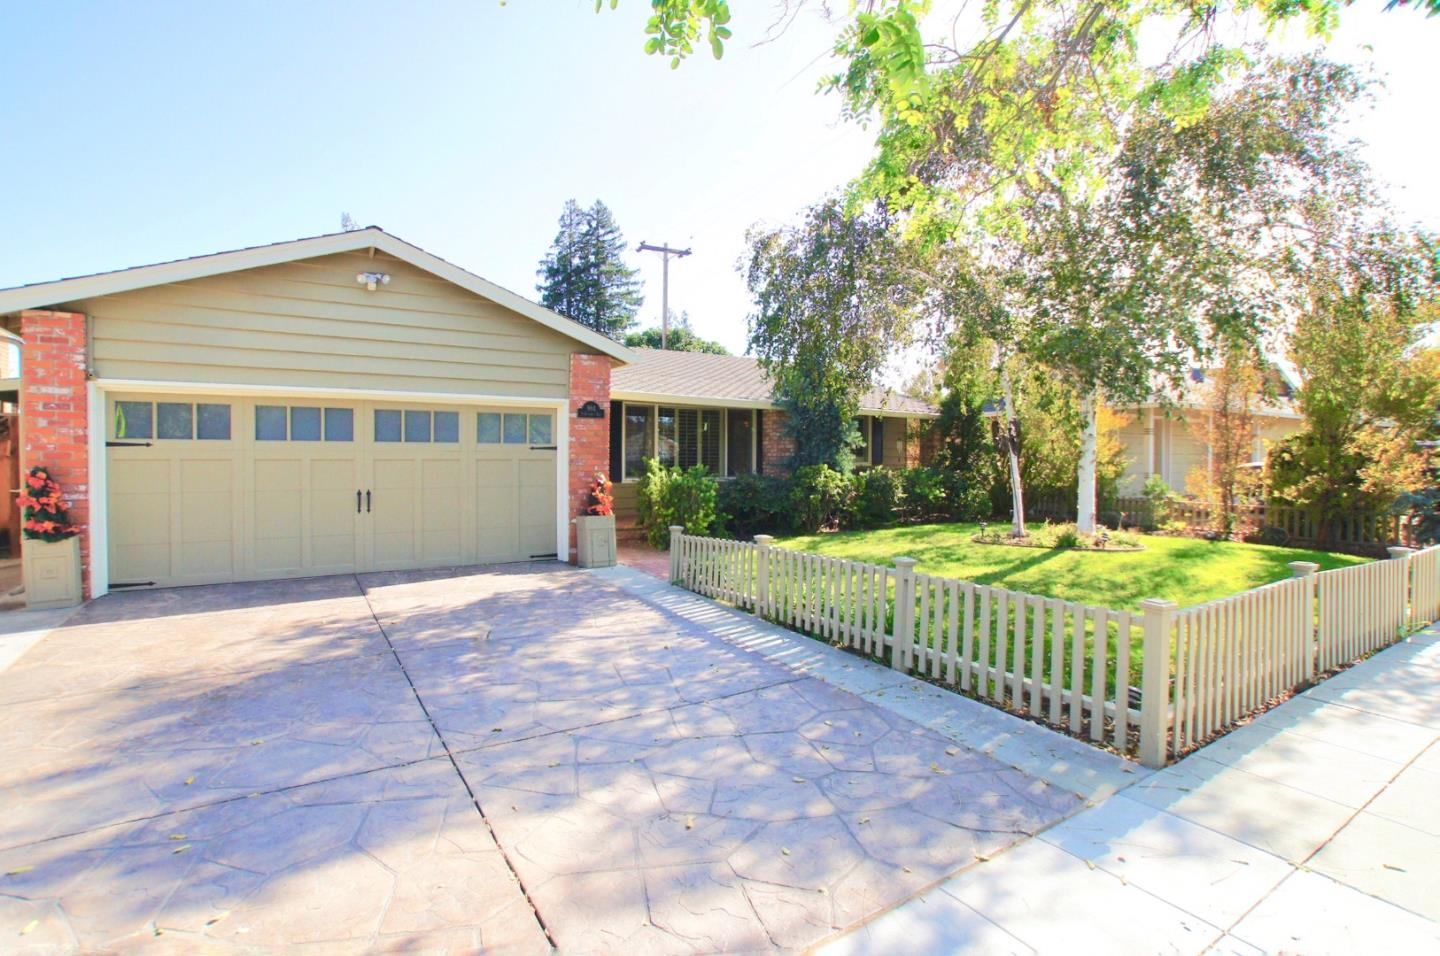 984 Cypress Avenue San Jose, CA 95117 - MLS #: ML81700905